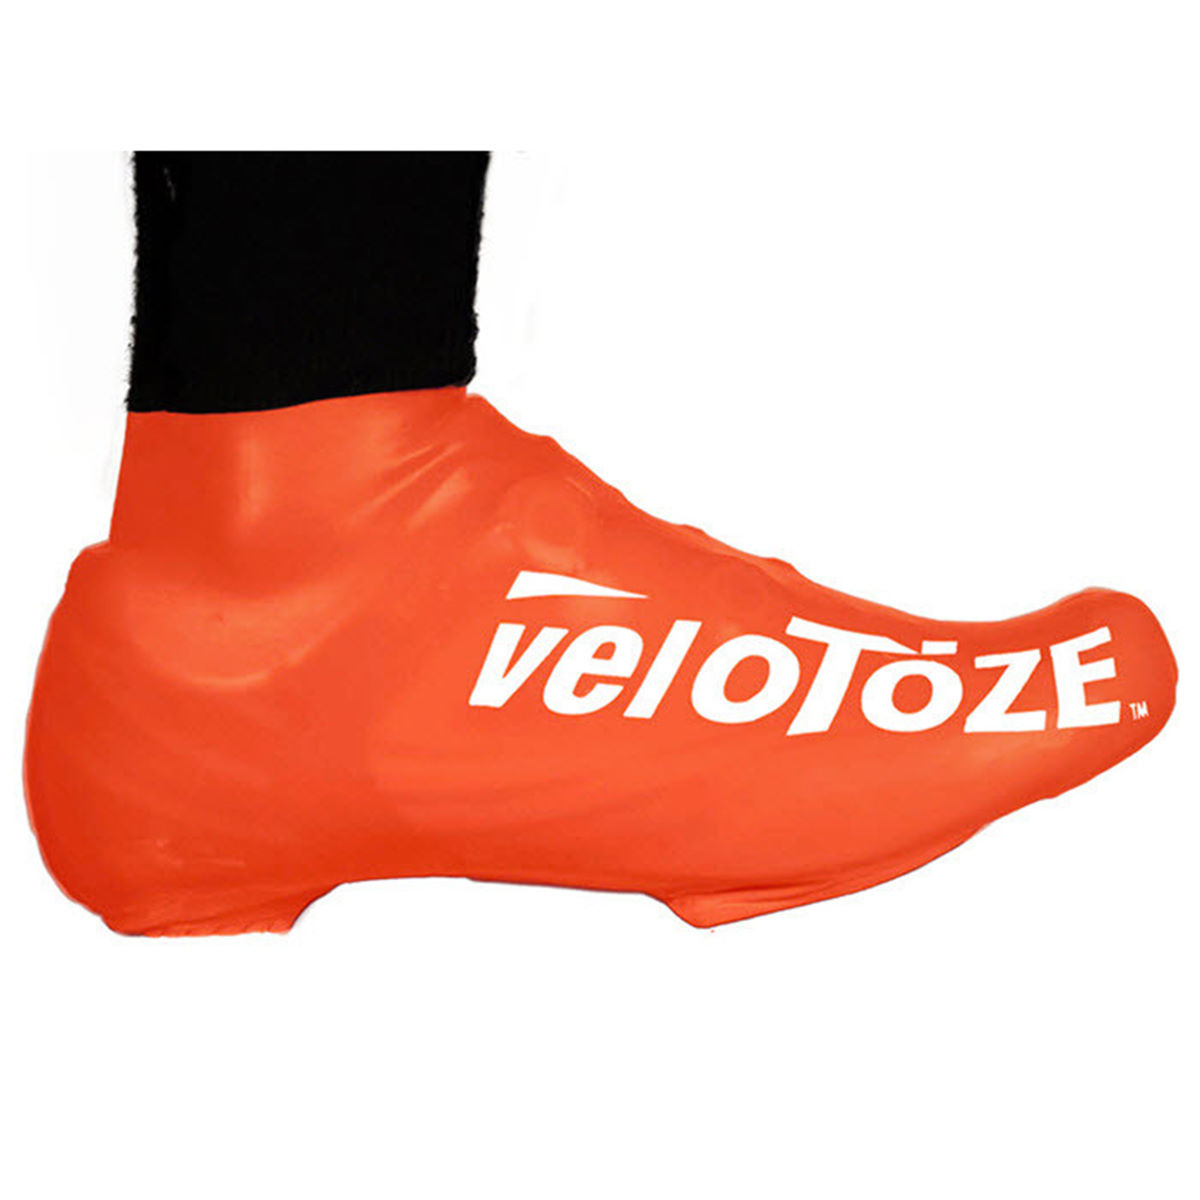 Couvre-chaussures VeloToze Short - S/M Orange Couvre-chaussures